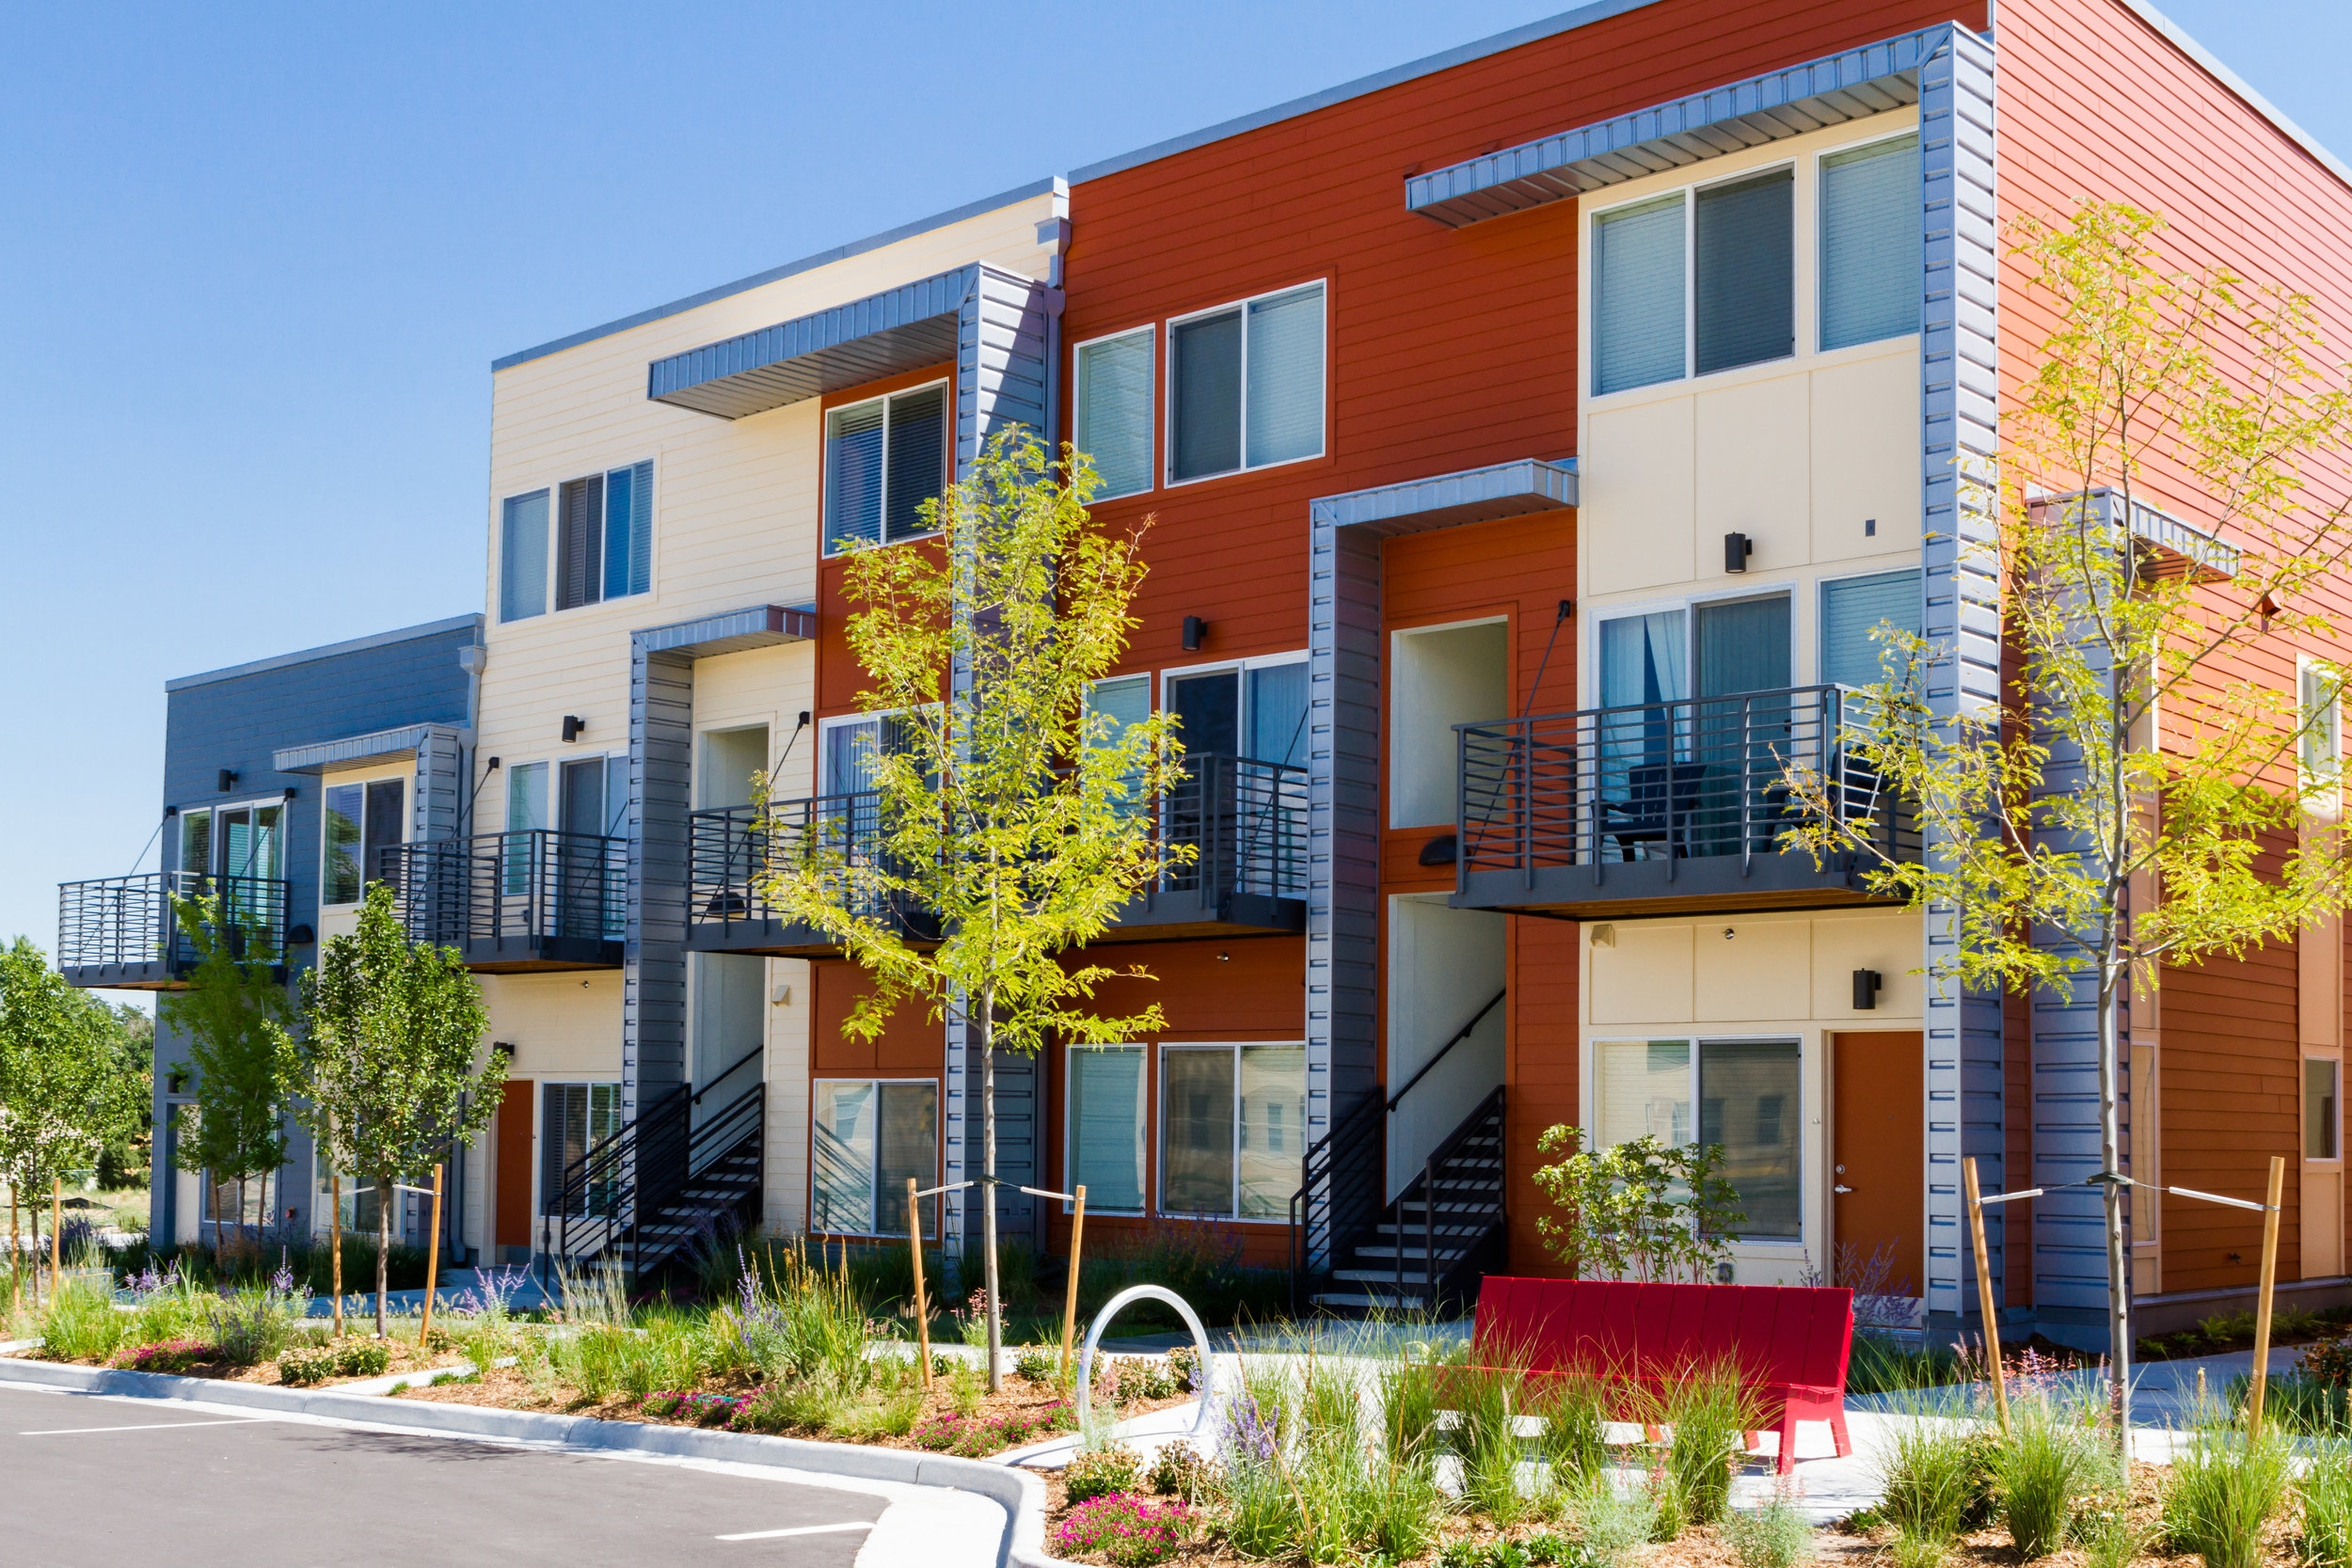 What We Can Do Together - KeyREADY Living collaborates with affordable housing developers, landlords, local and city officials, non-profit organizations and advocacy groups to develop permanent and affordable housing communities for adults with disabilities in North Texas.